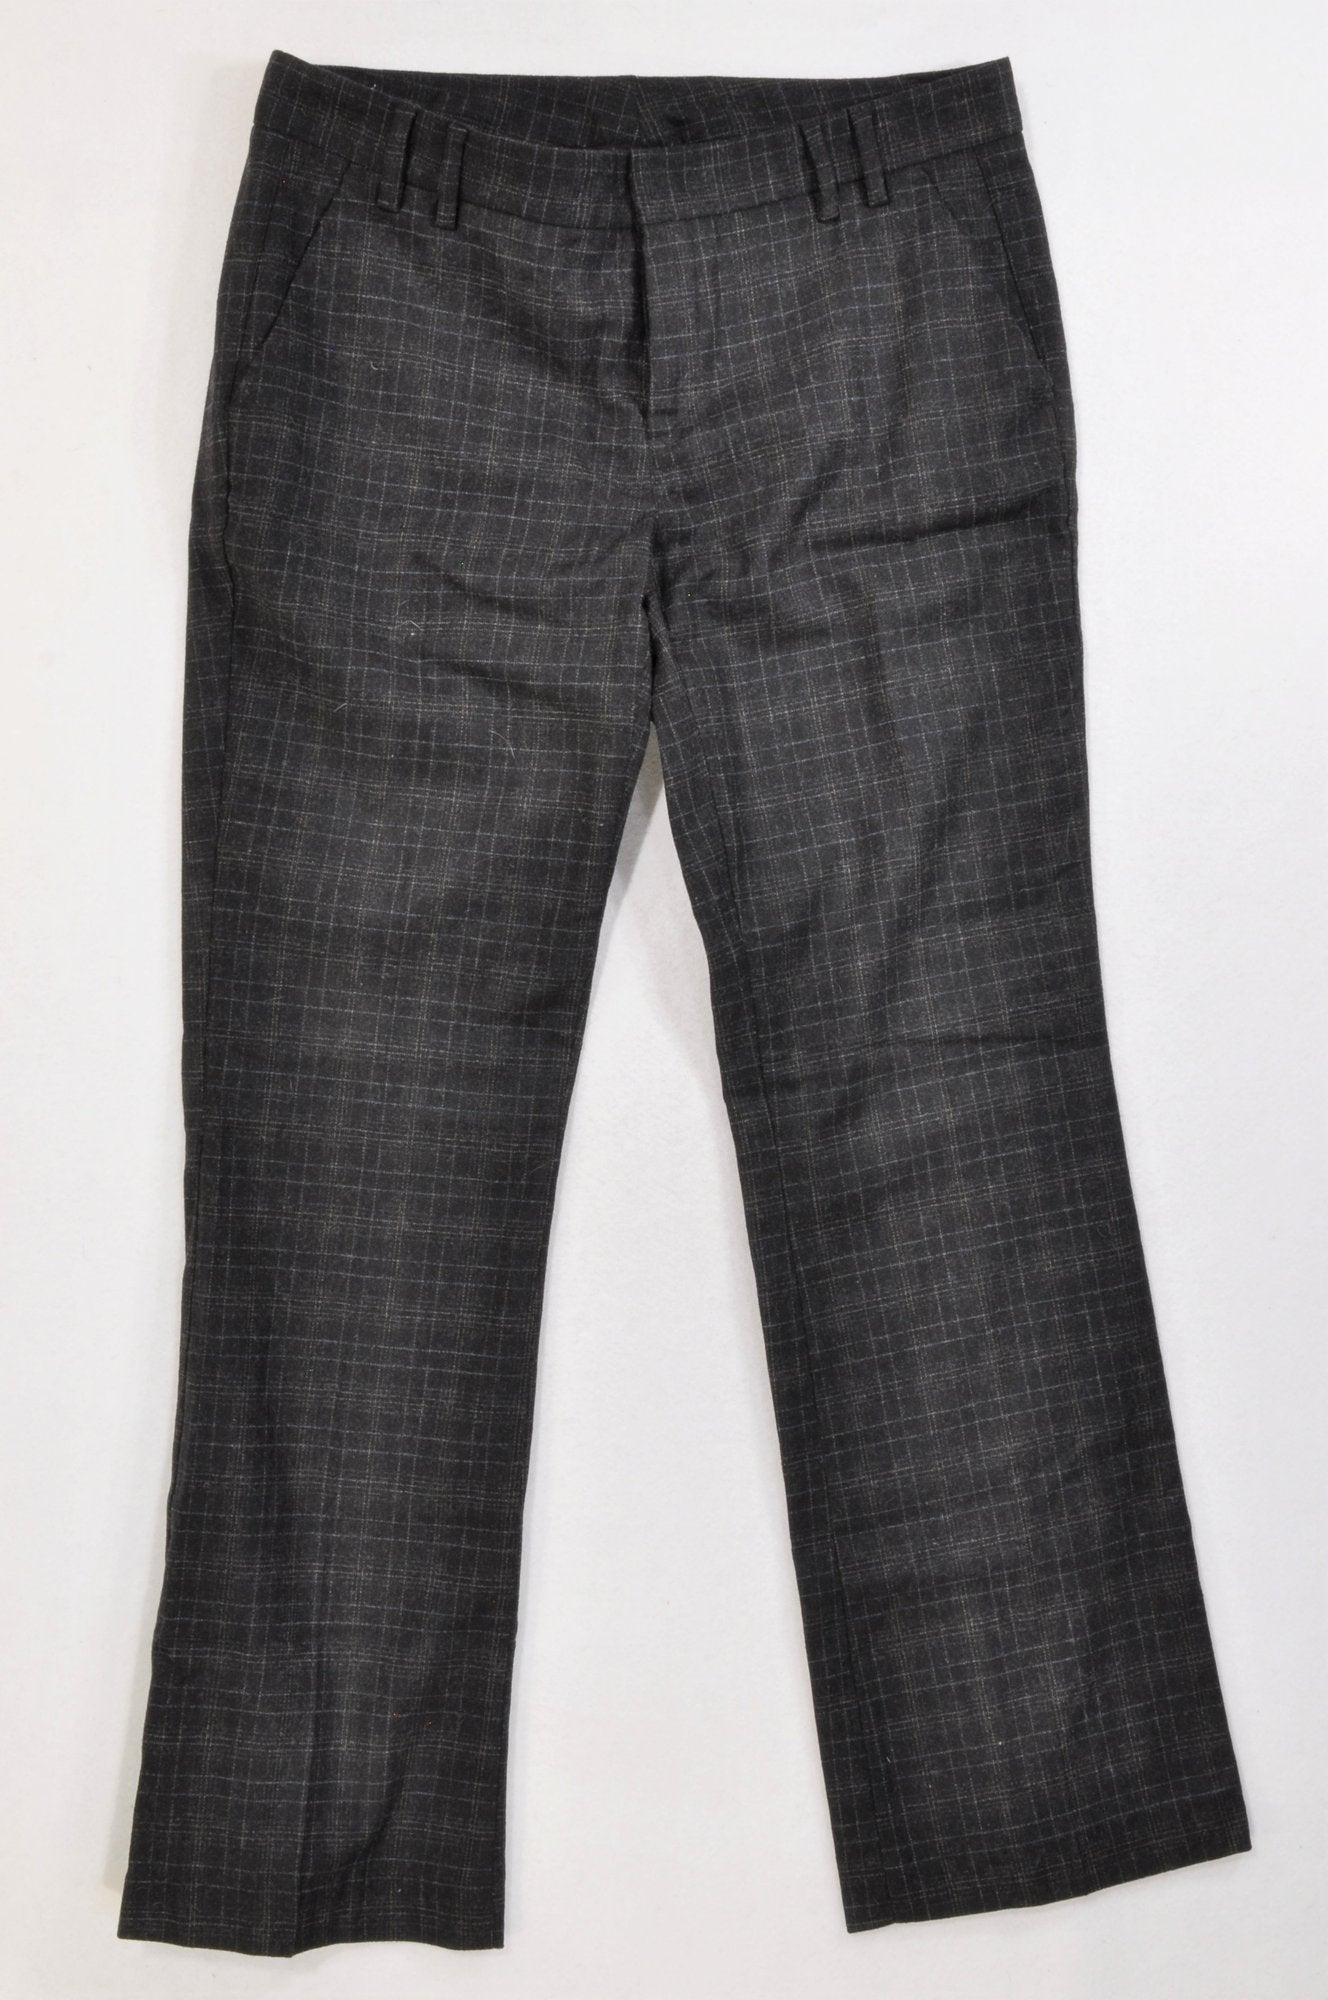 United Colours of Benetton Black & Charcoal Plaid Wool Blend Trouser Pants Women Size 12